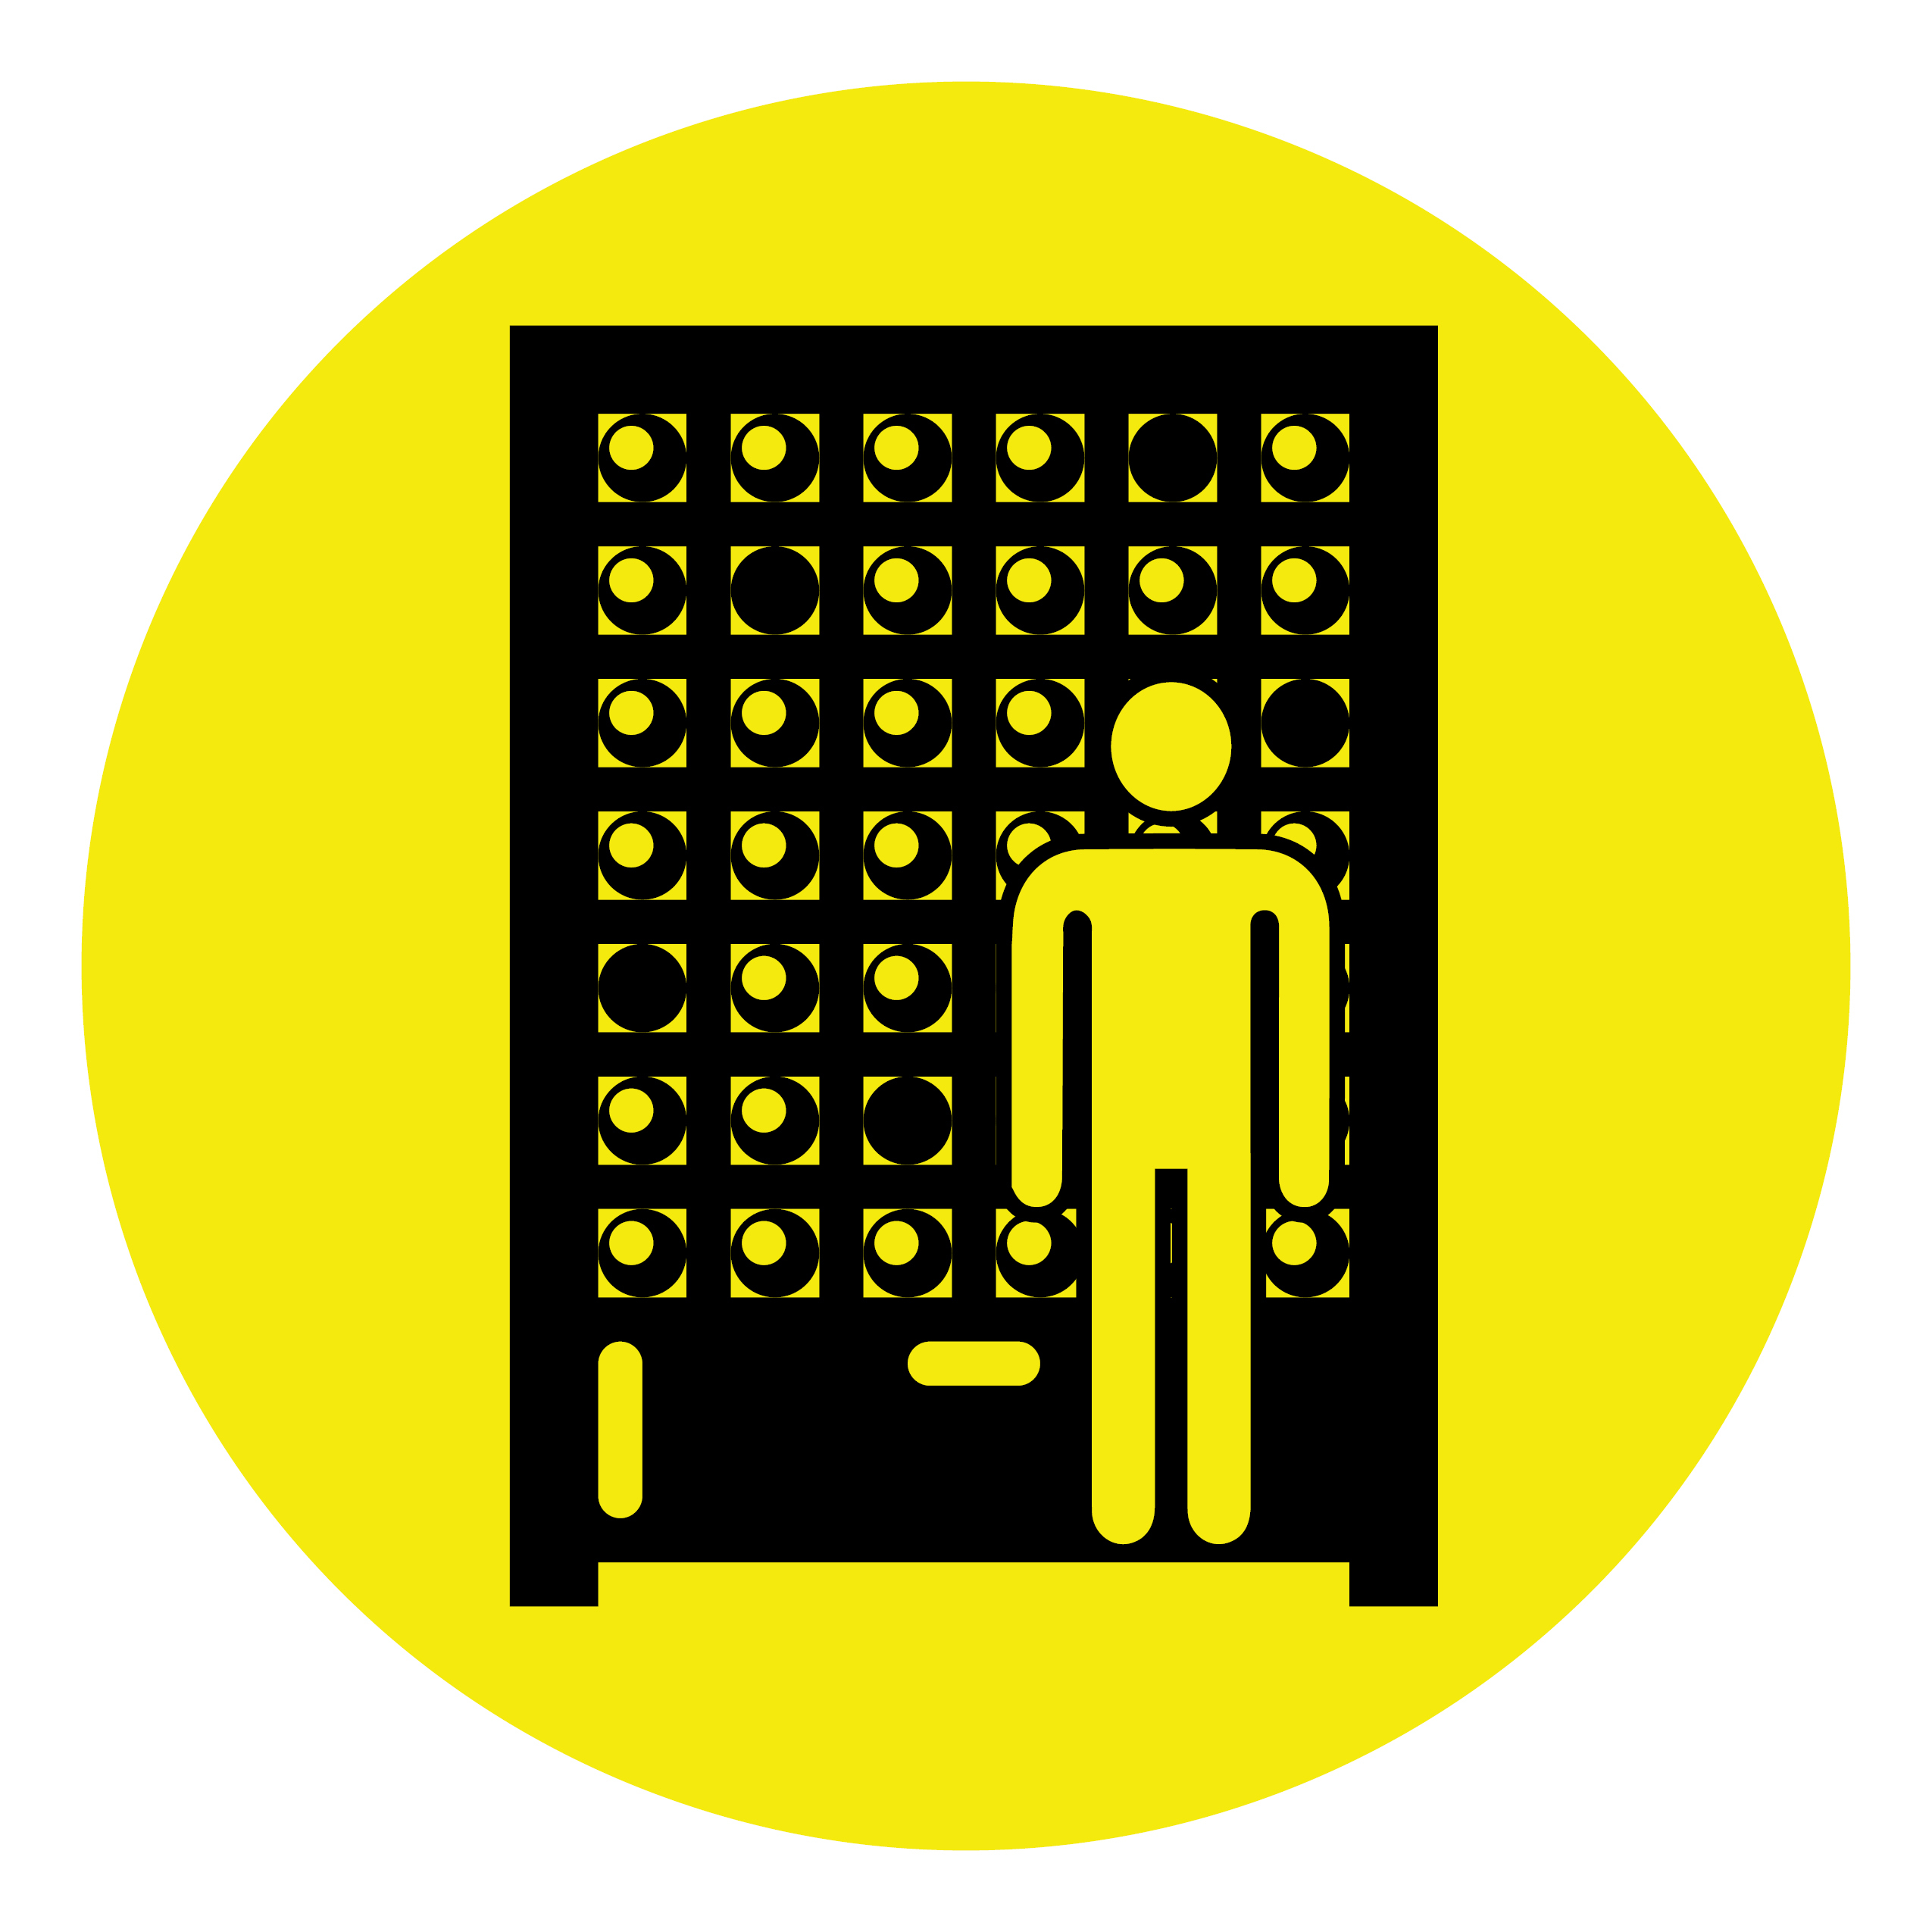 A yellow circle contains the image of a figure standing in an early computer system